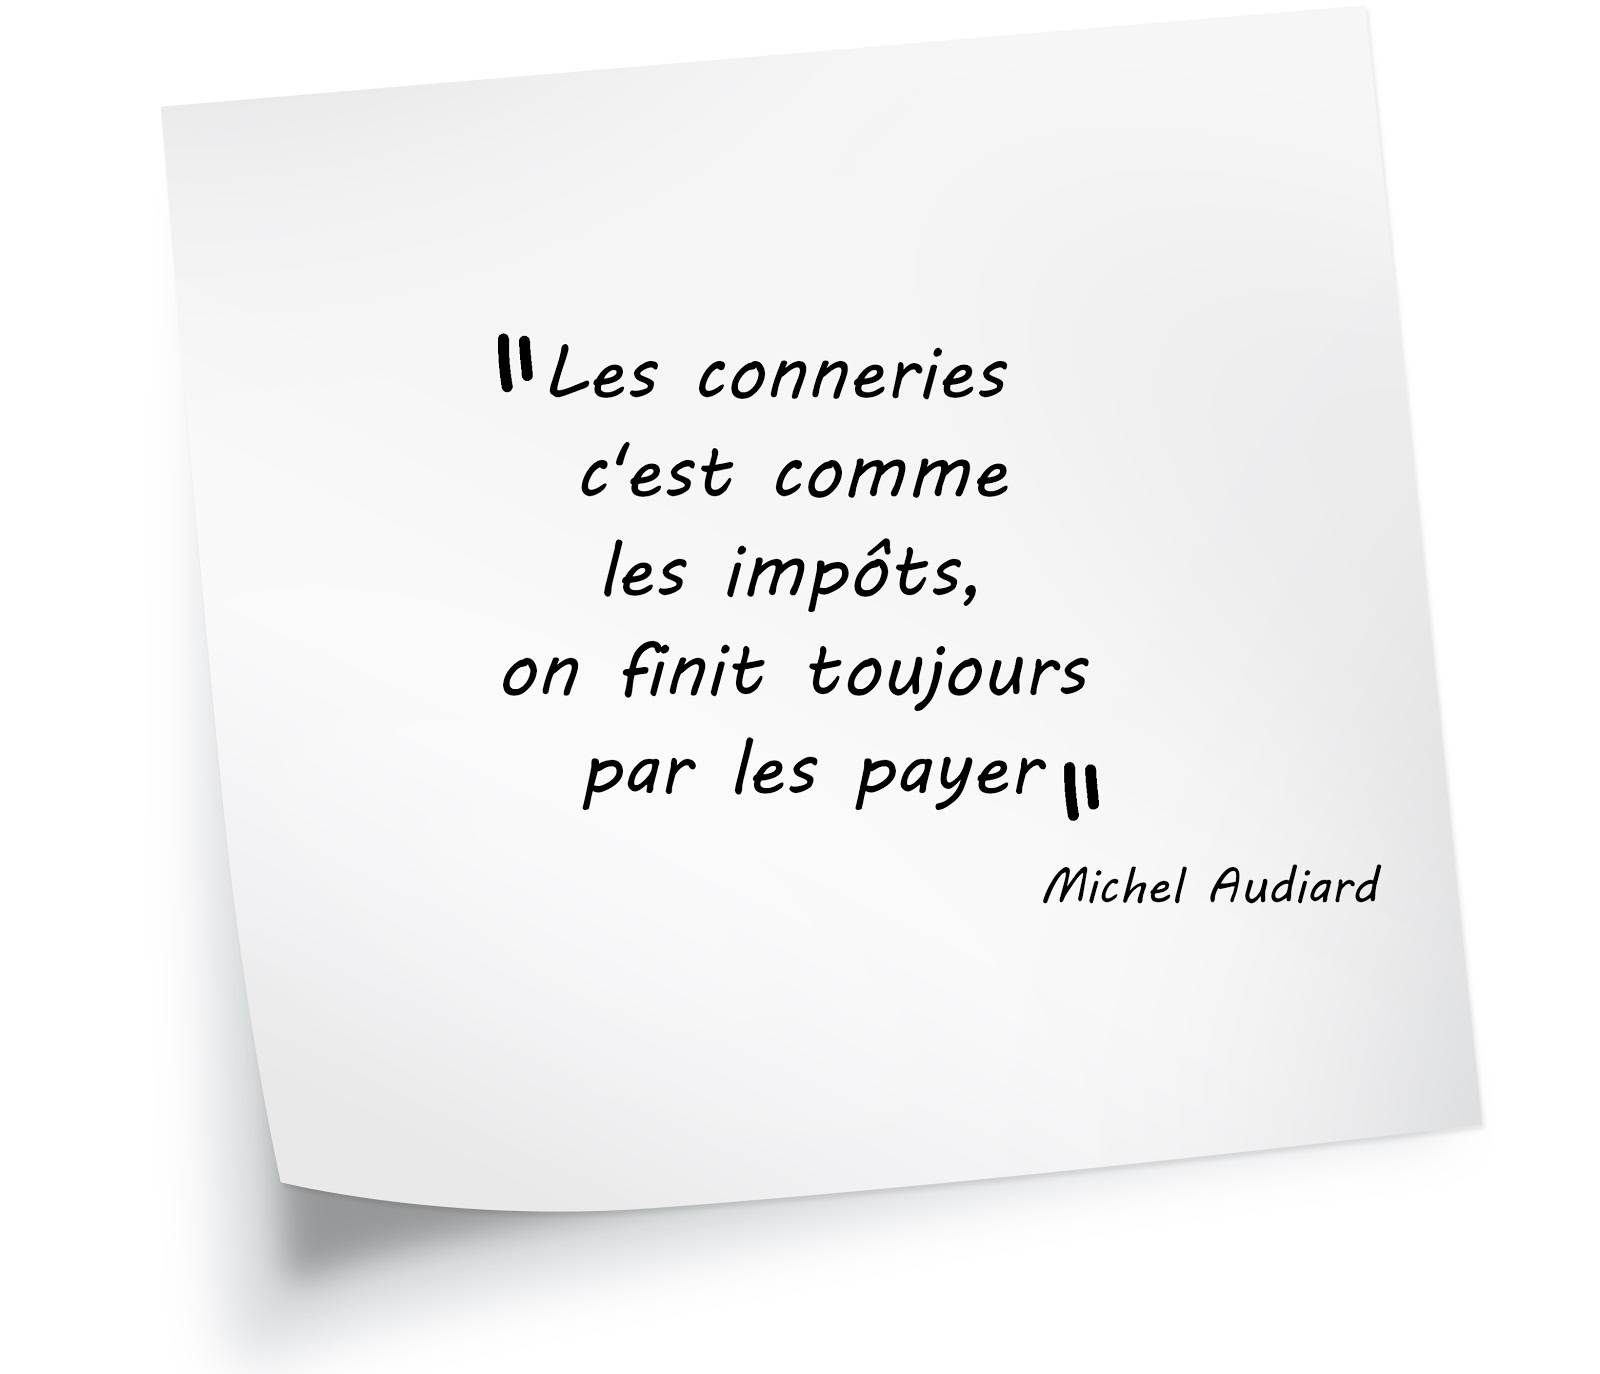 Les conneries citation